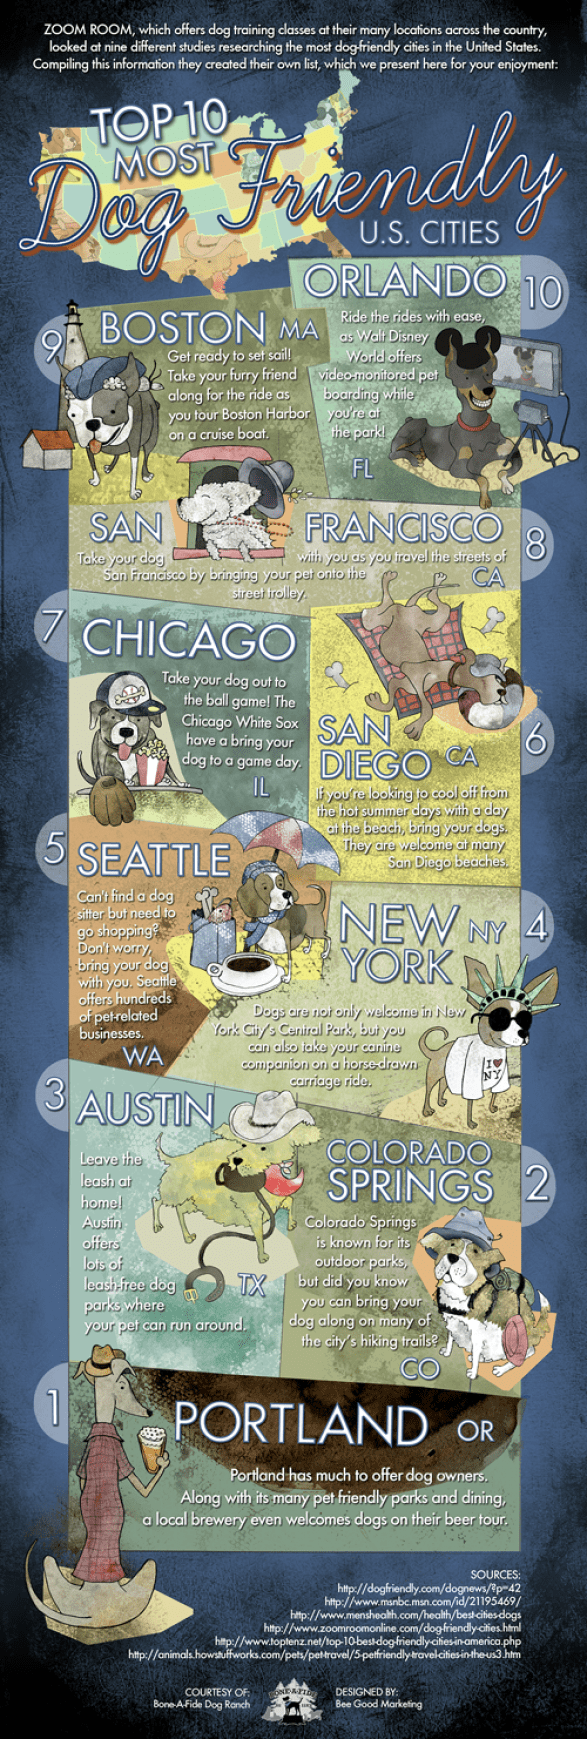 Top 10 Most Dog Friendly U.S. Cities